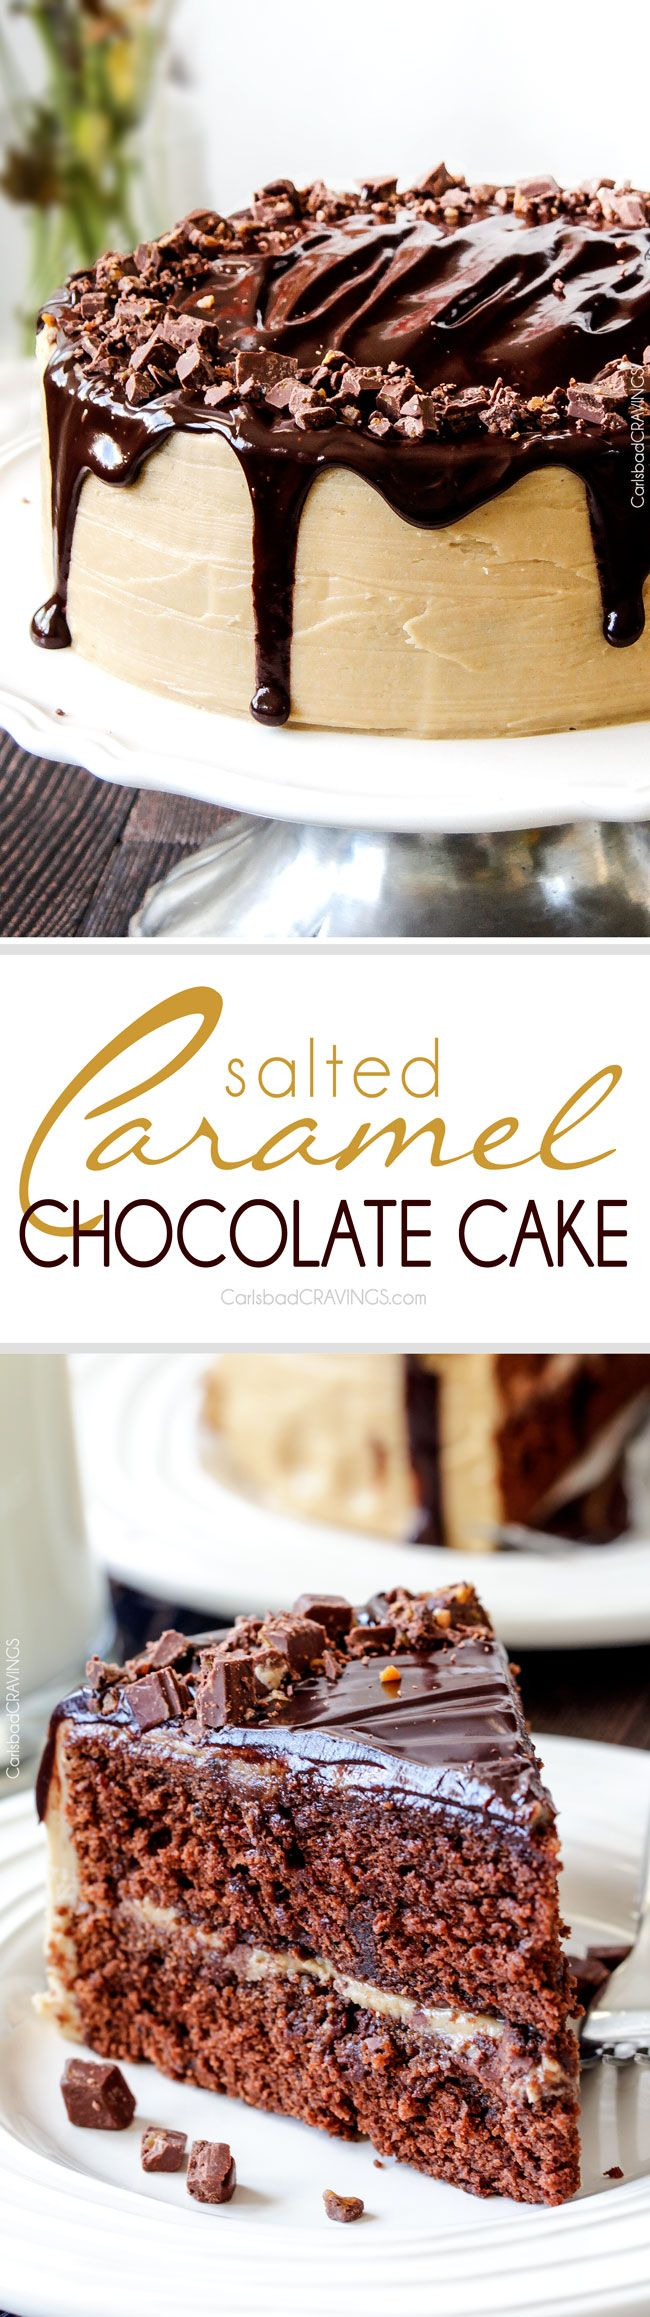 so addicting!!  Chocolate Cake, busting with milk chocolate toffee bits, coated in Caramel Icing and smothered in silky chocolate ganache. THE only chocolate cake recipe you need!